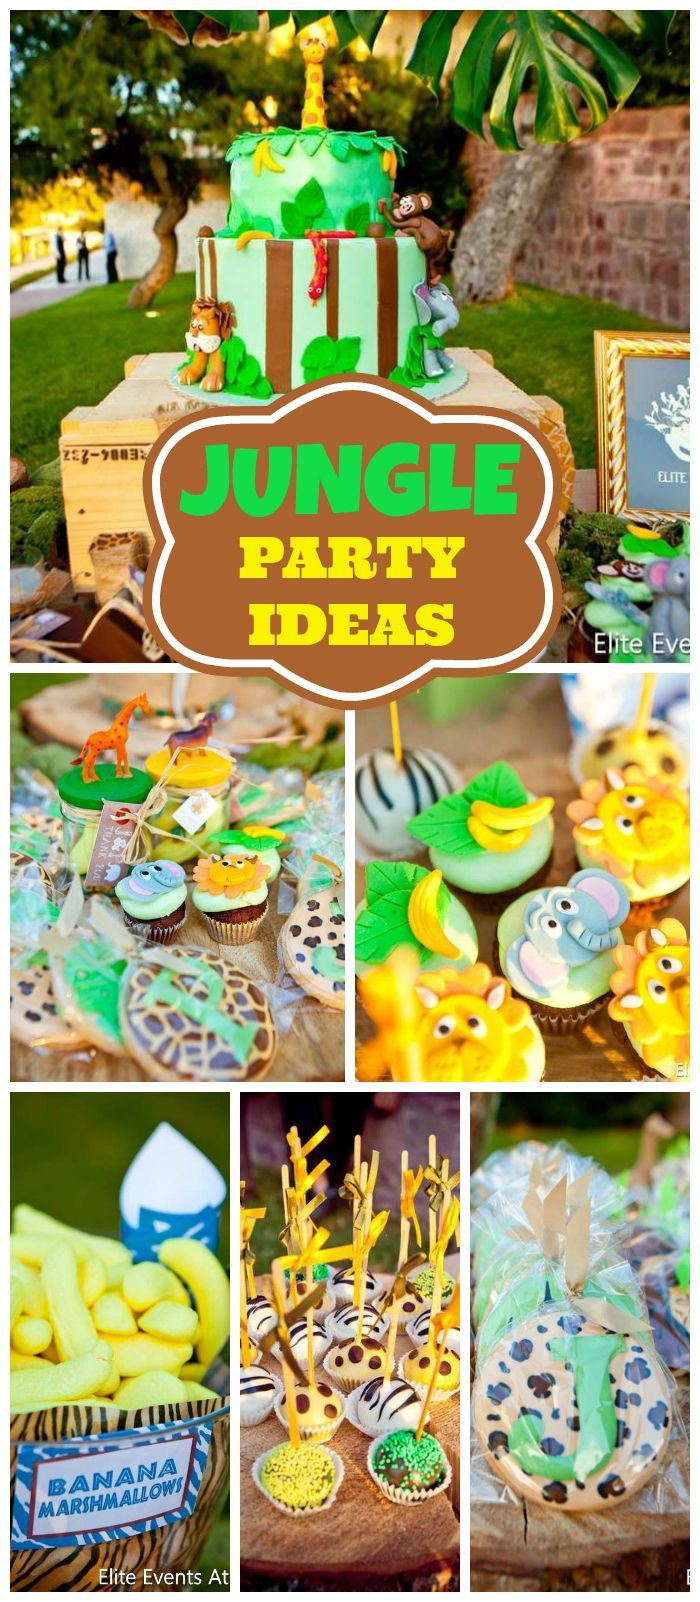 A jungle safari themed baptism for twins with adorable cupcakes, cookies and cake!